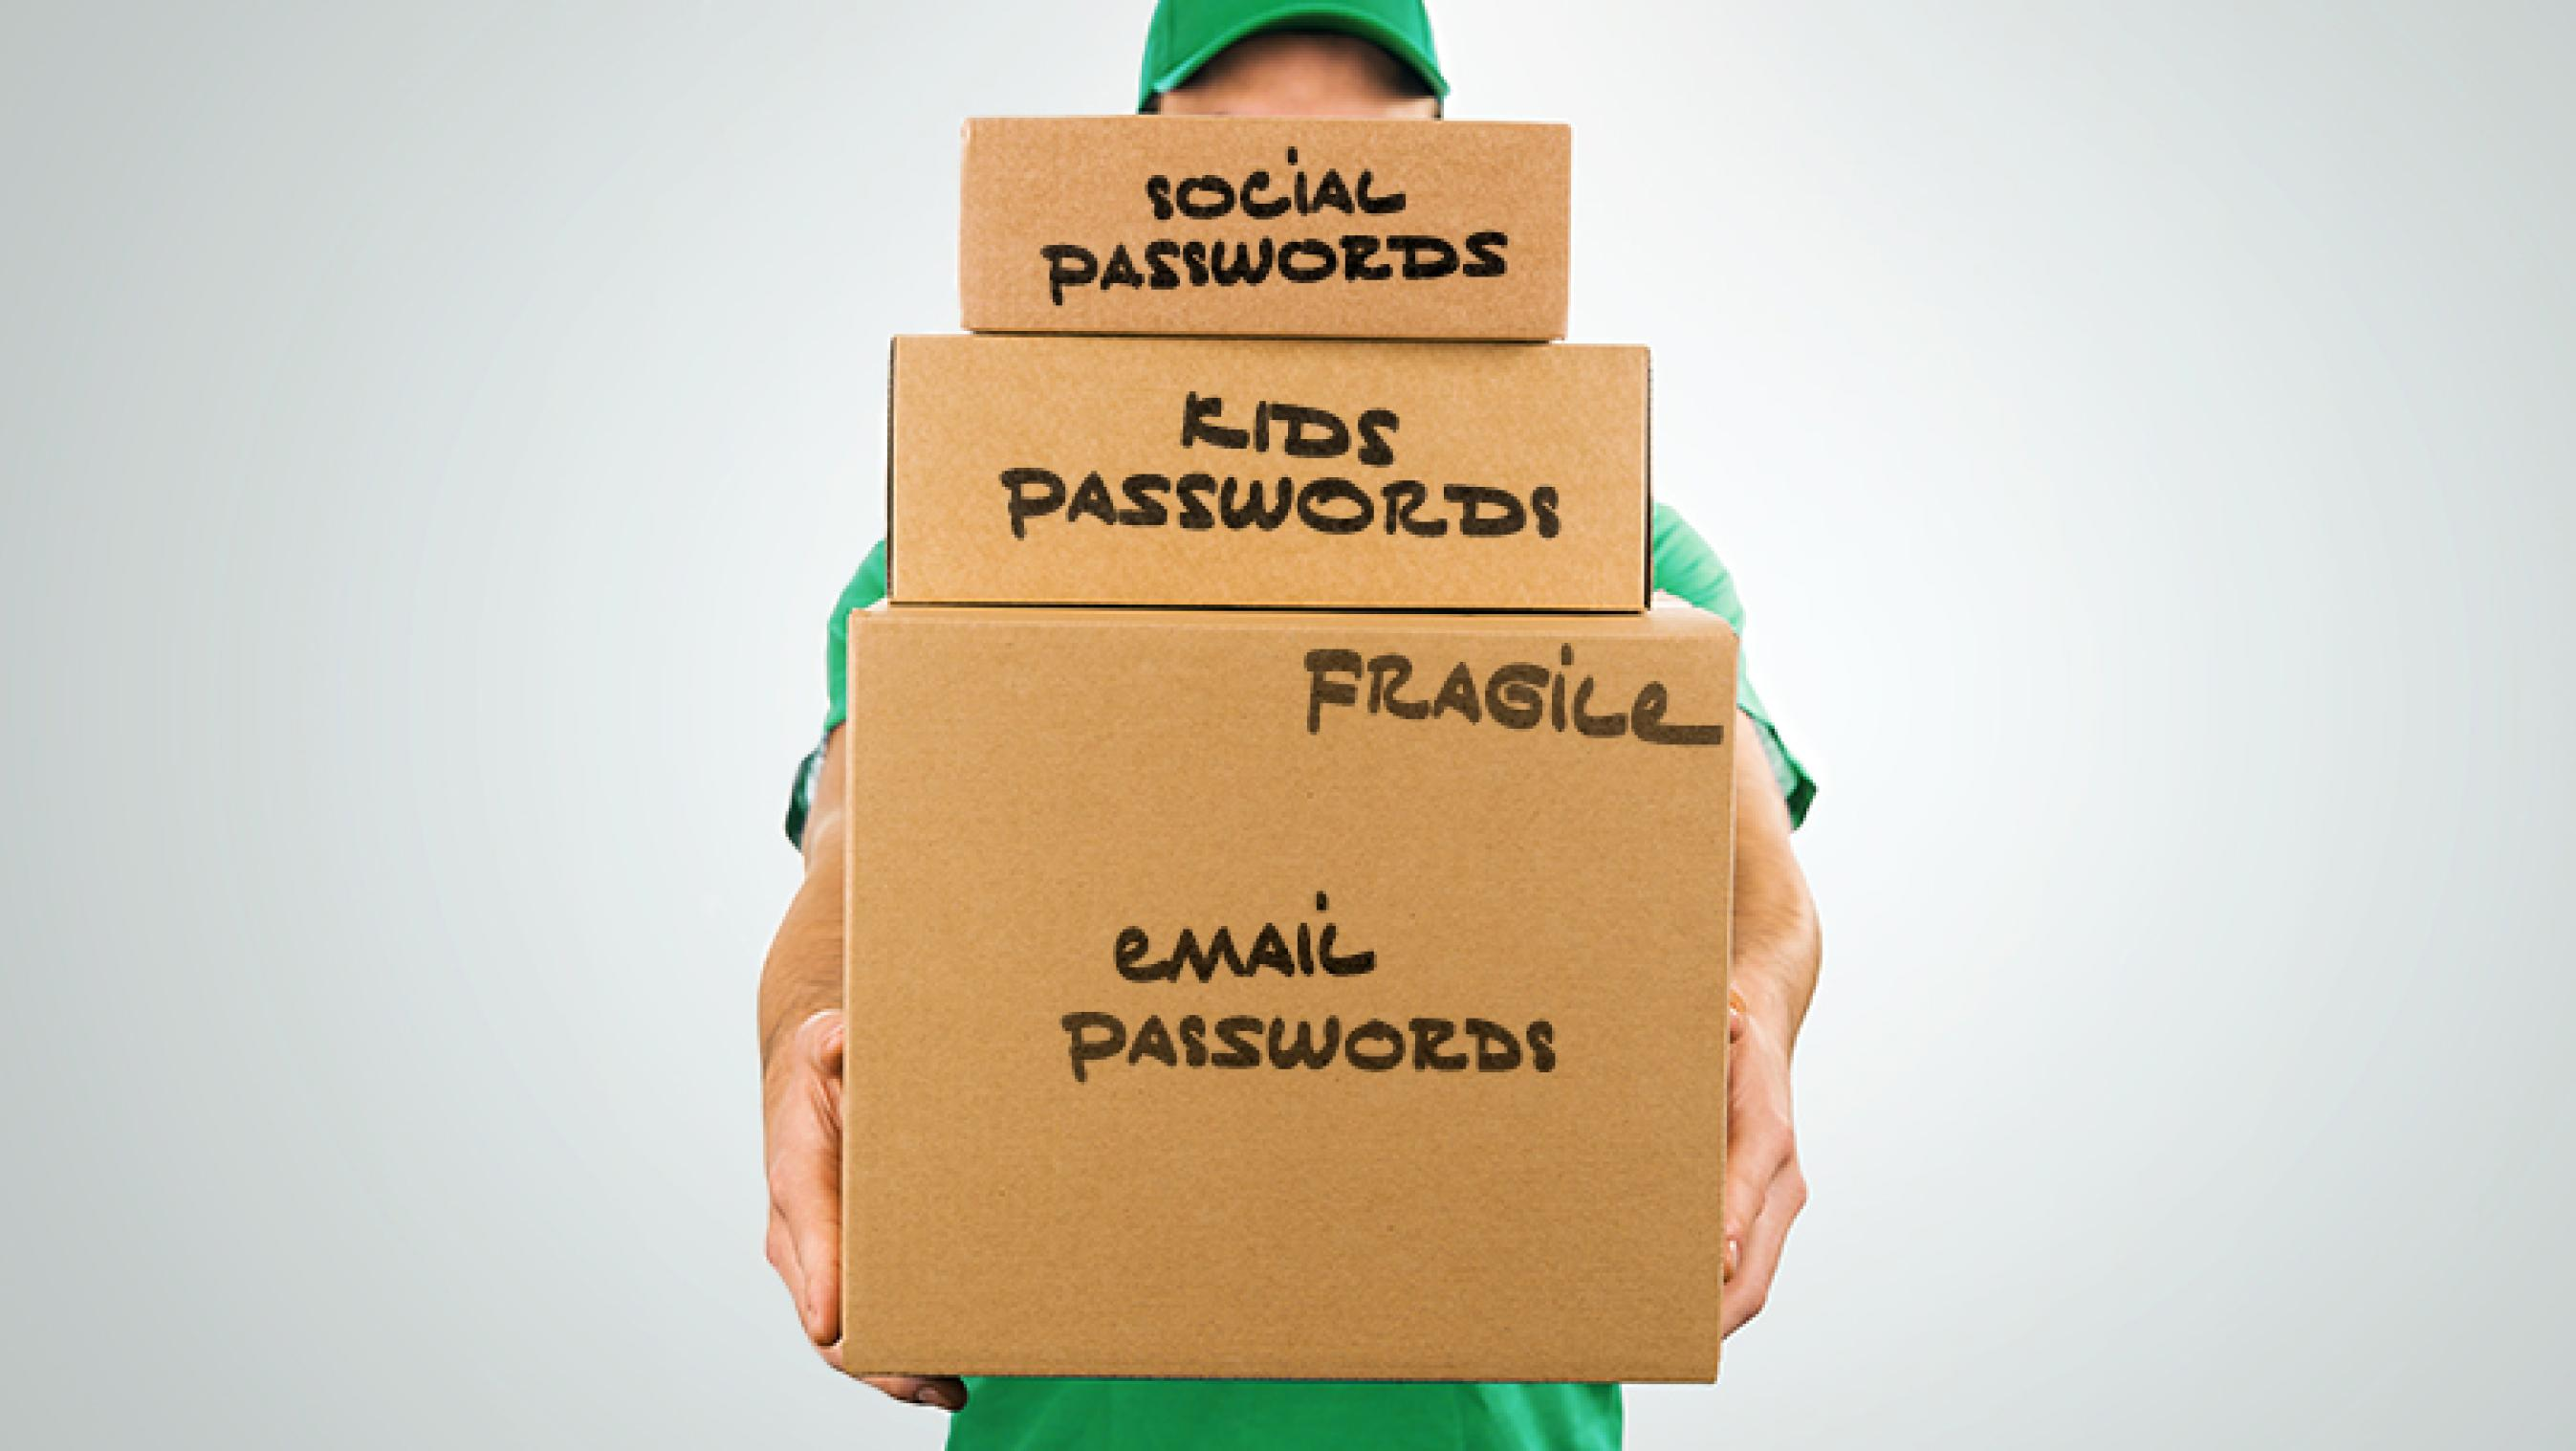 boxes carrying passwords